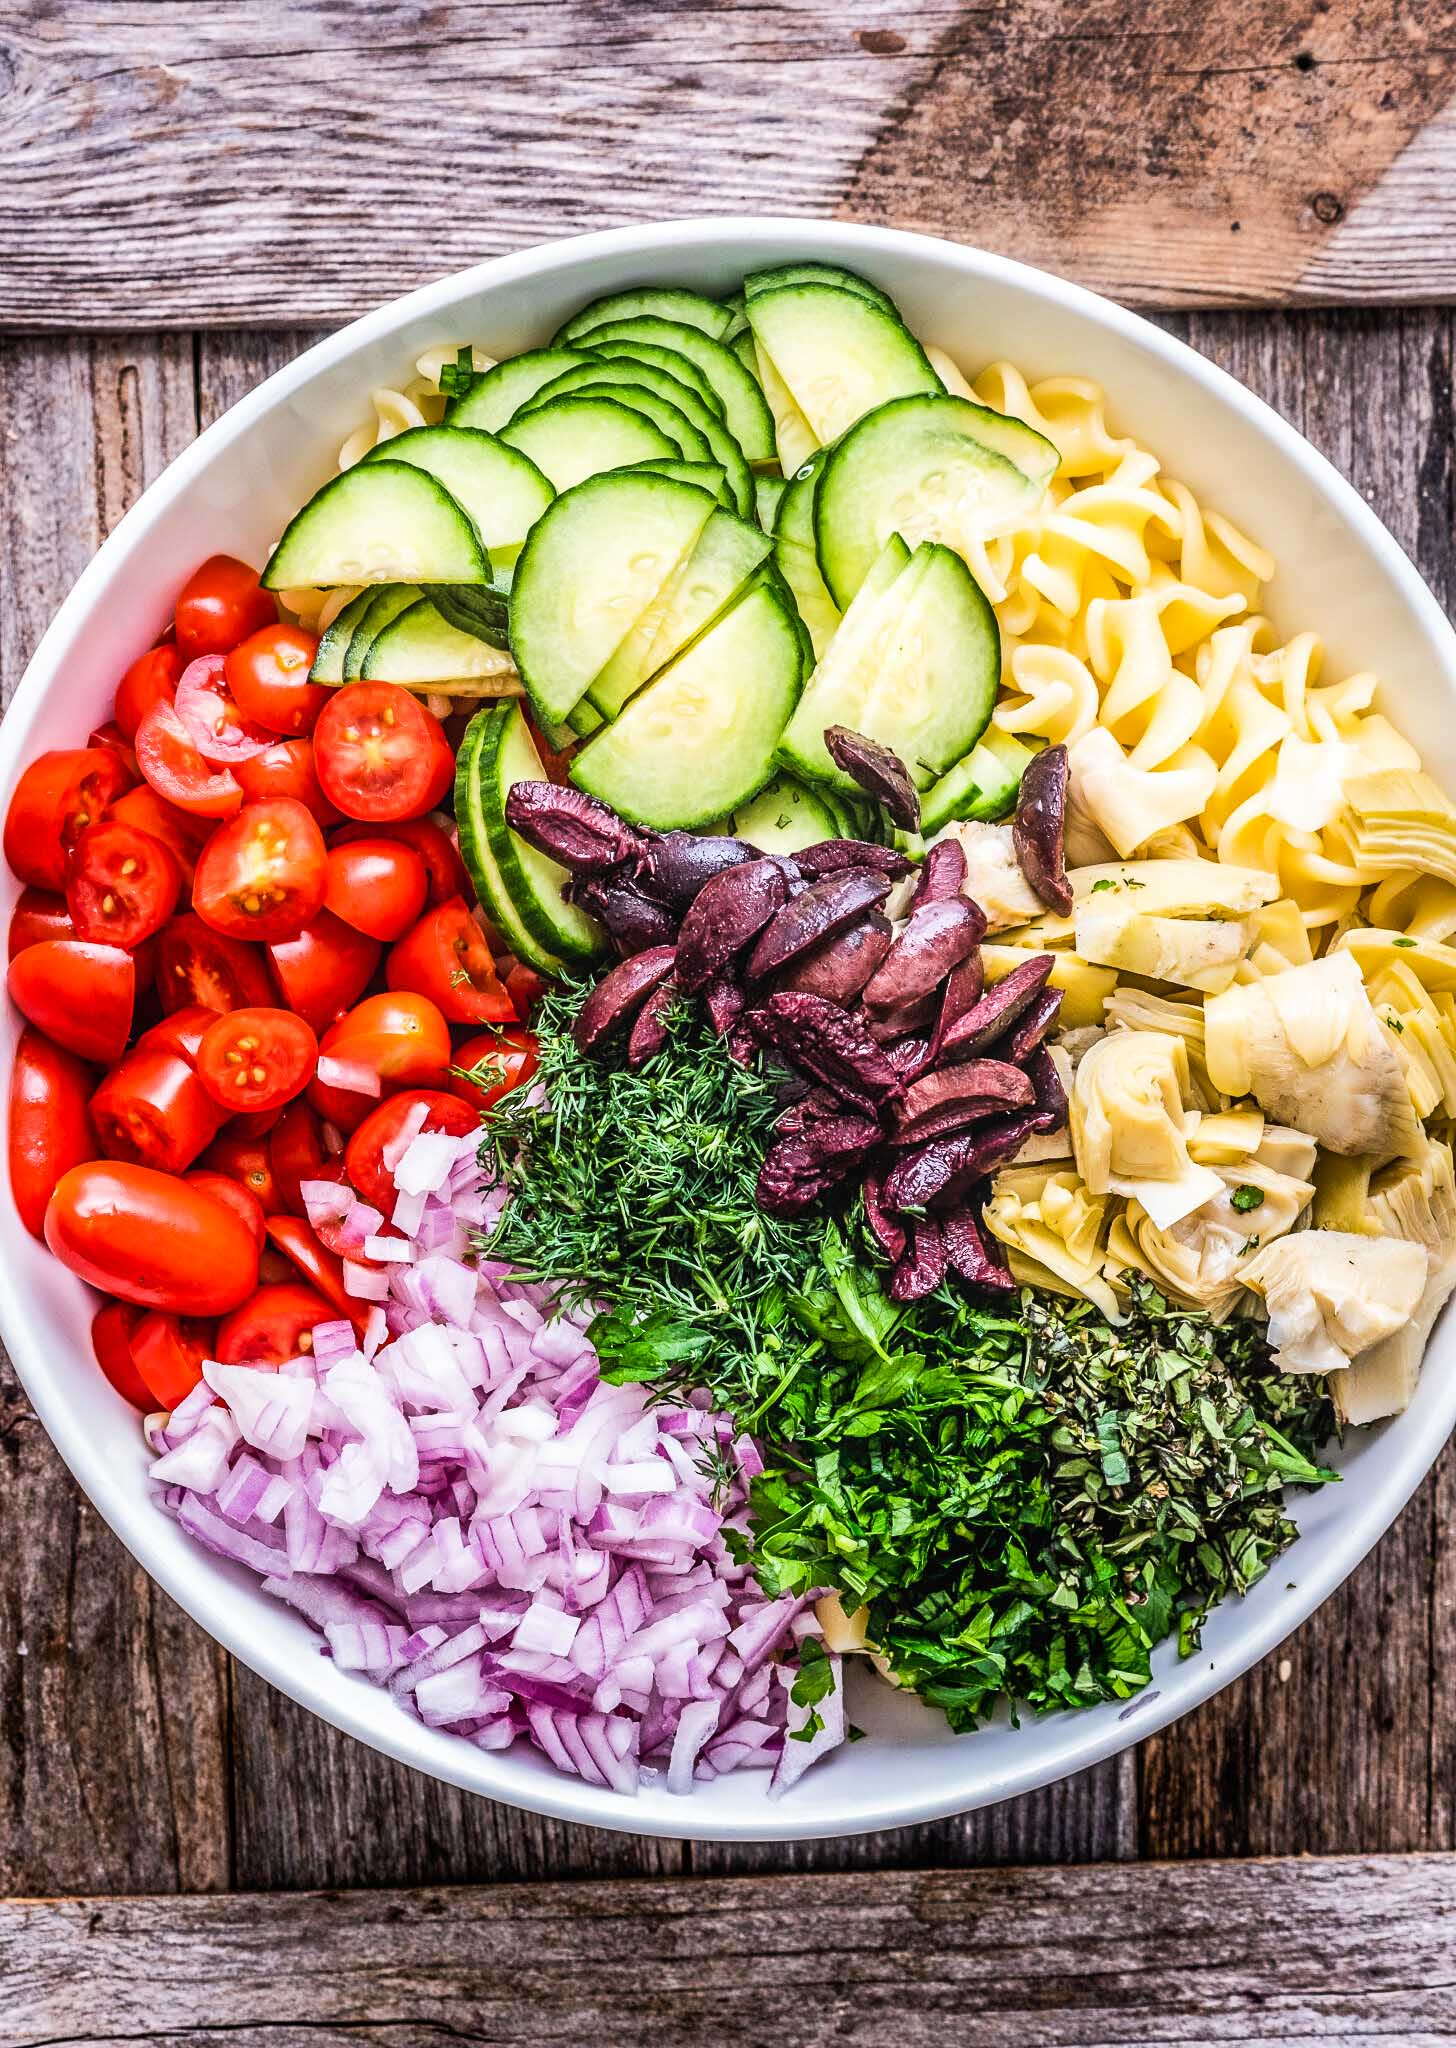 All the ingredients for Greek pasta salad in a mixing bowl.